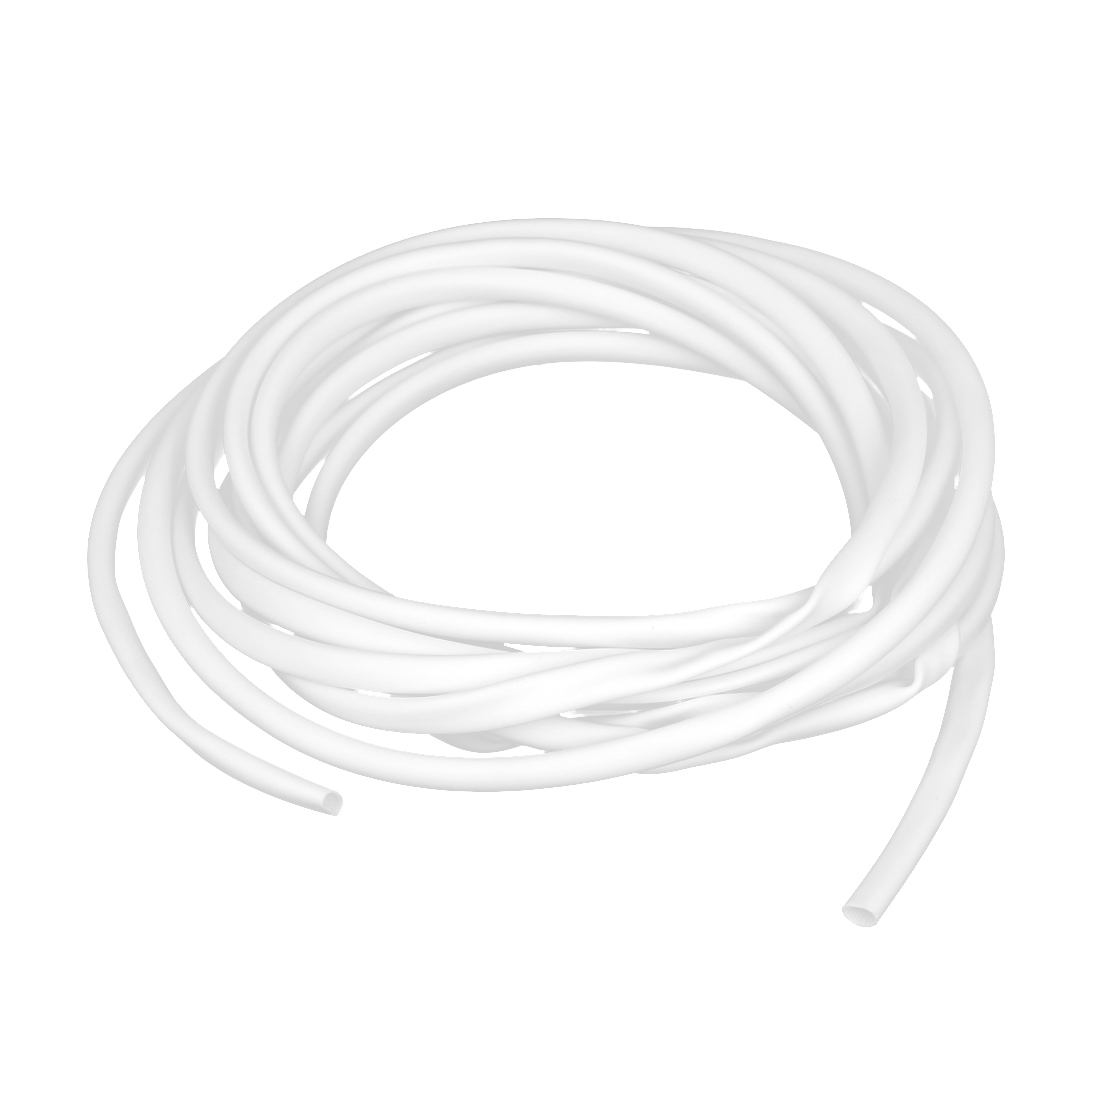 White Protective PVC Marking Tube Sleeve Sleeving 5mm x 5m for Cable Wire